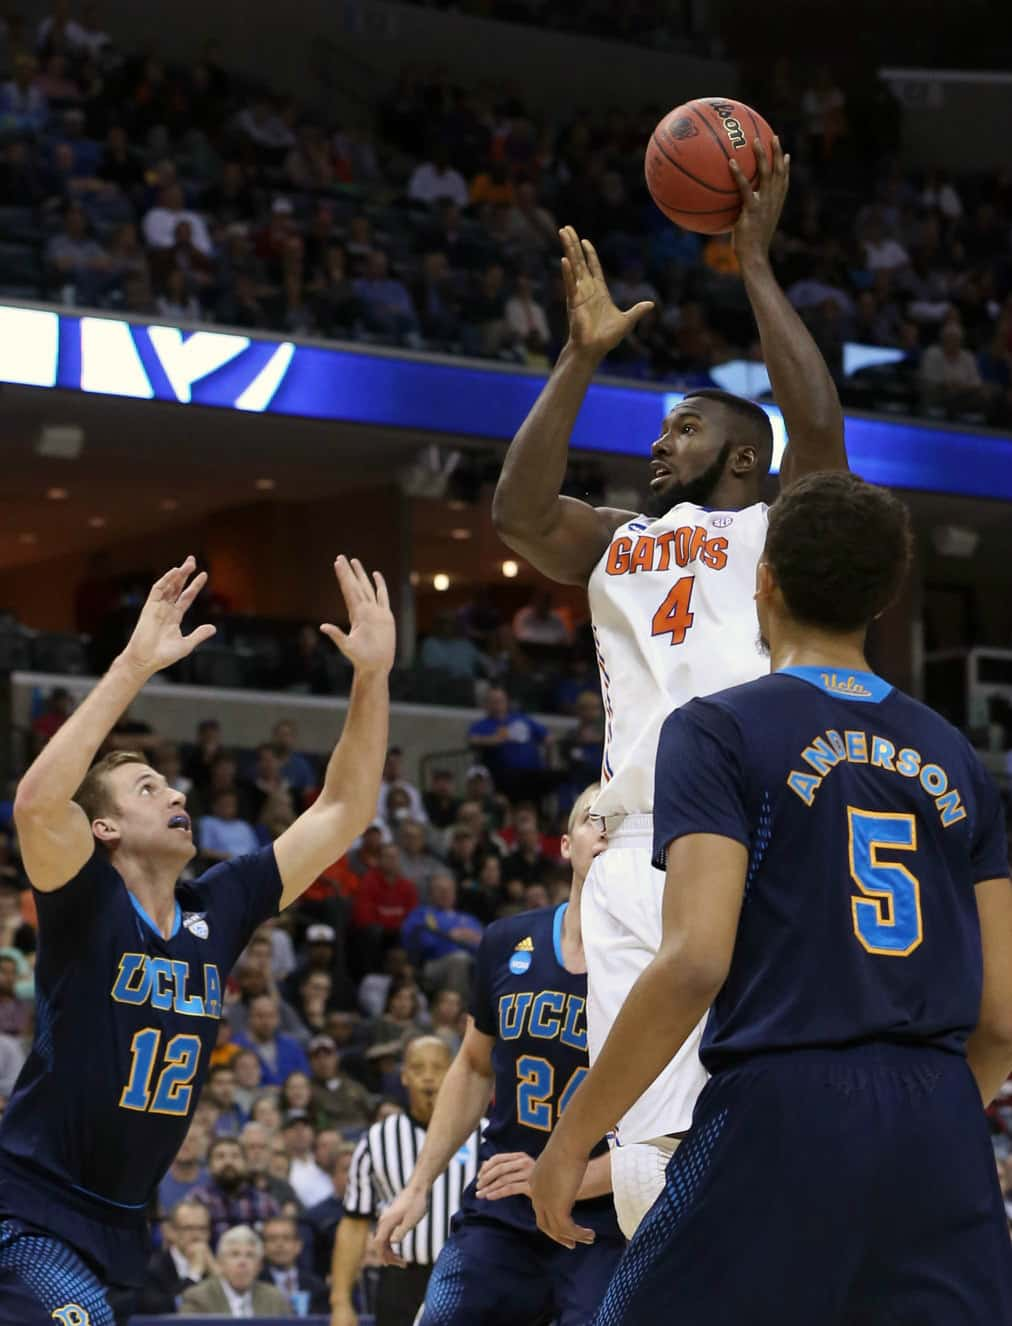 Mar 27, 2014; Memphis, TN, USA; Florida Gators center Patric Young (4) shoots over UCLA Bruins forward David Wear (12) during the second half in the semifinals of the south regional of the 2014 NCAA Mens Basketball Championship tournament at FedExForum. Photo by: Nelson Chenault-USA TODAY Sports